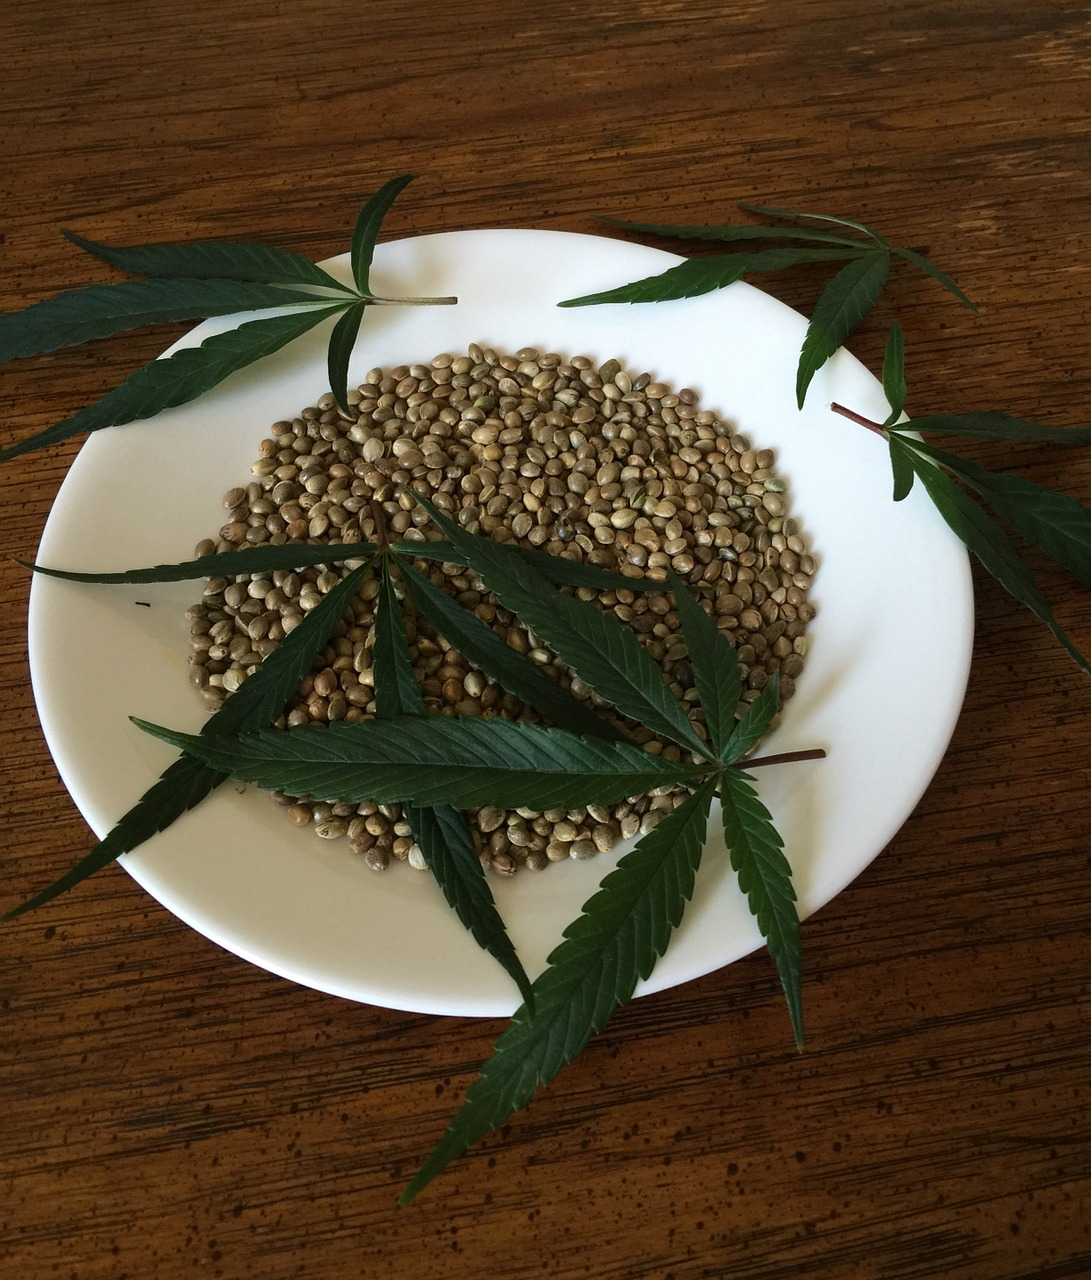 Desire An Executive Health 24/7? Get The Best Cannabis Seed Info Here